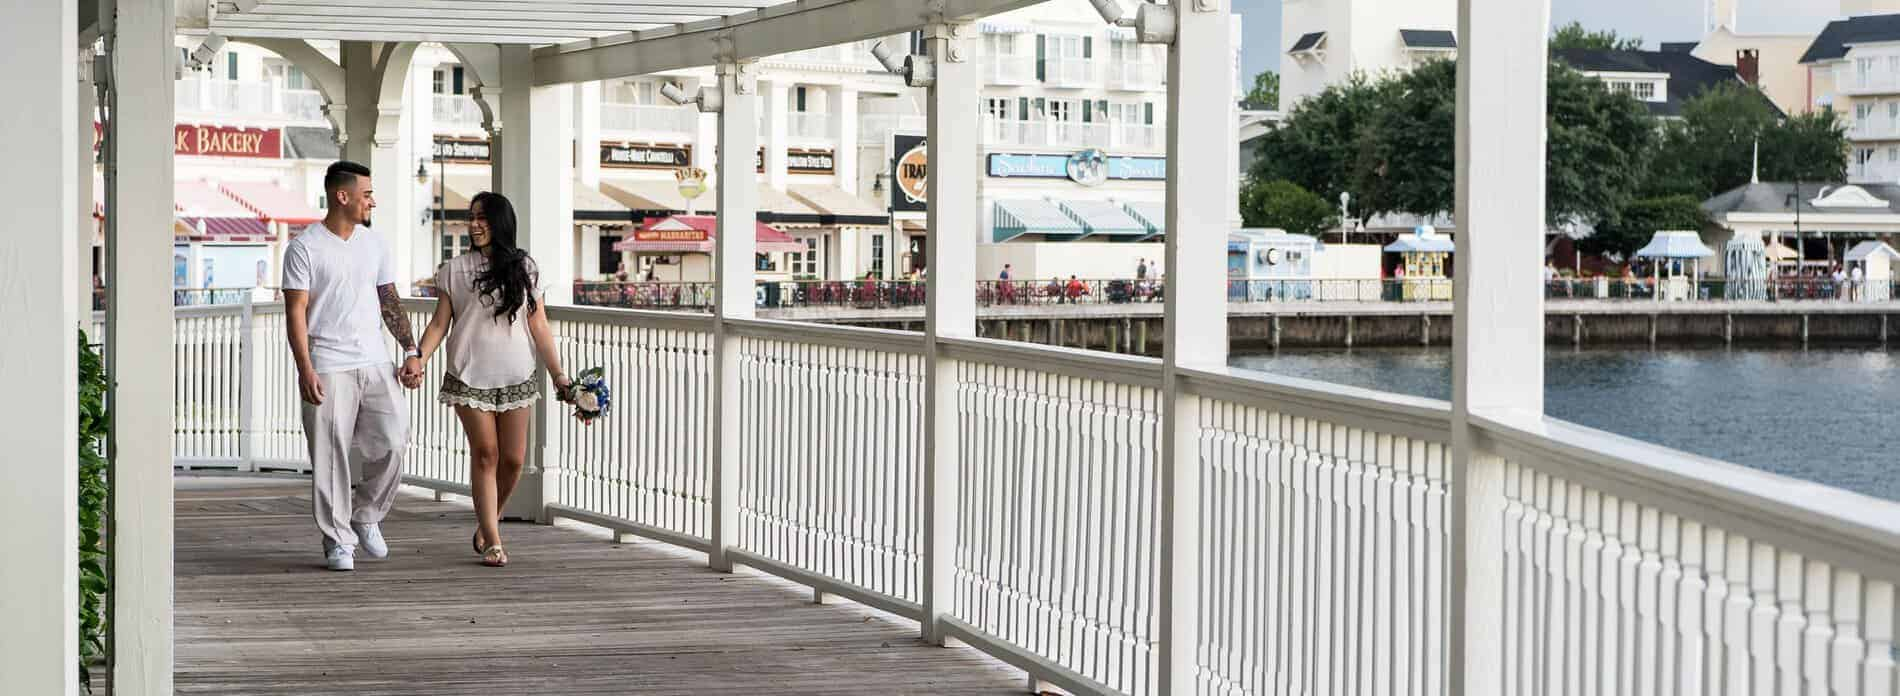 Couple walk to the pavilion at Disney Boardwalk.